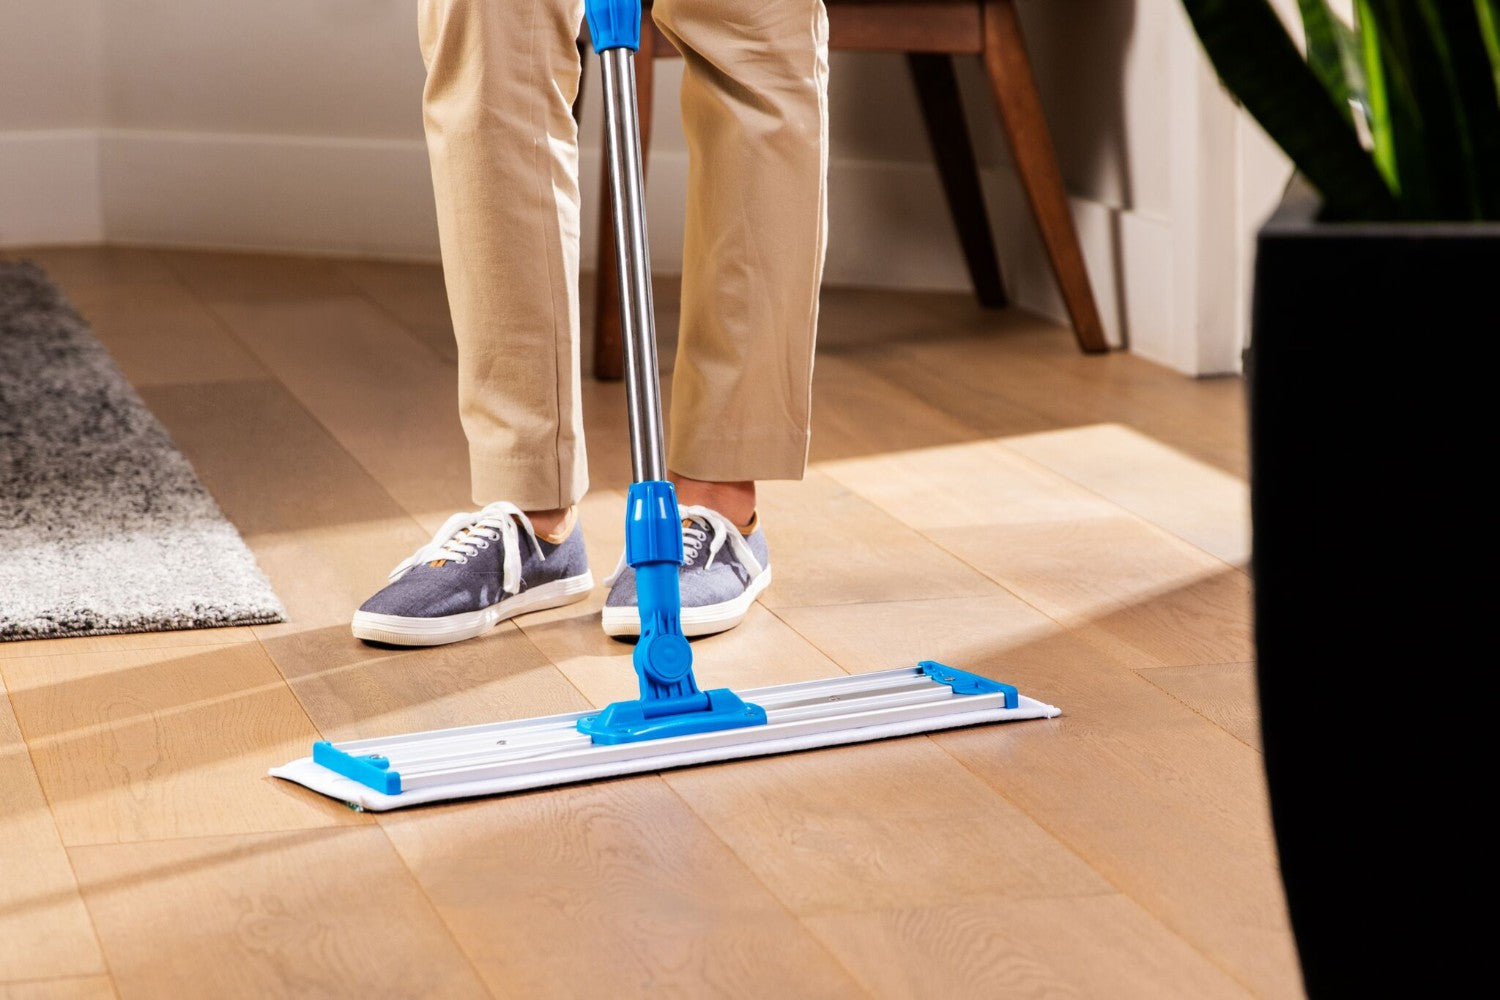 20 Inch Pad Shown-48 Inch Microfiber Dust Mop For Cleaning Hard Floor Surfaces MDM50